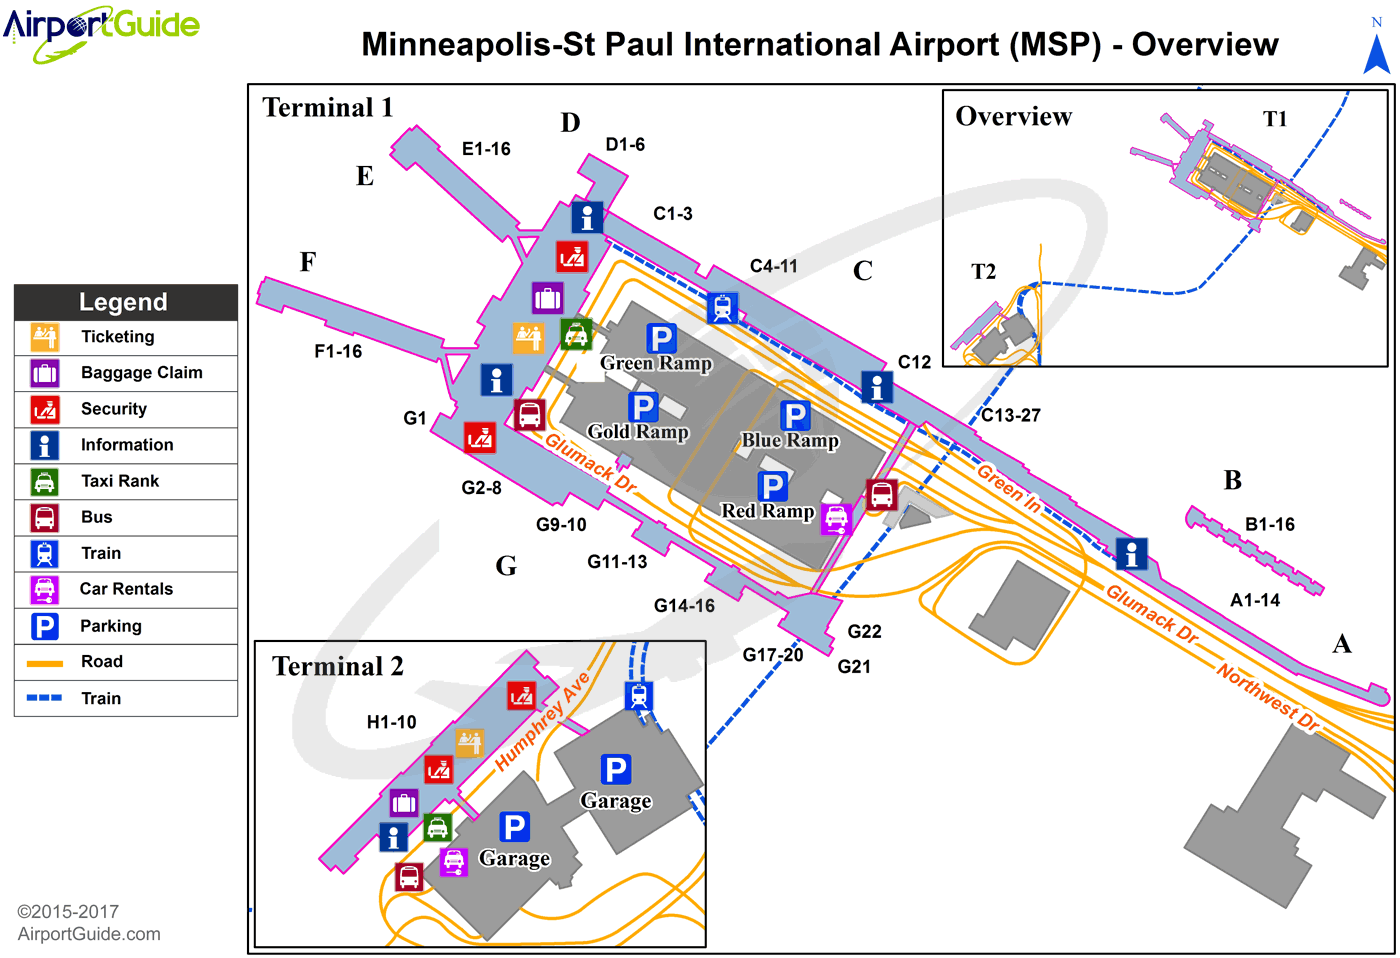 Minneapolis - Minneapolis-St Paul International/Wold-Chamberlain (MSP) Airport Terminal Map - Overview